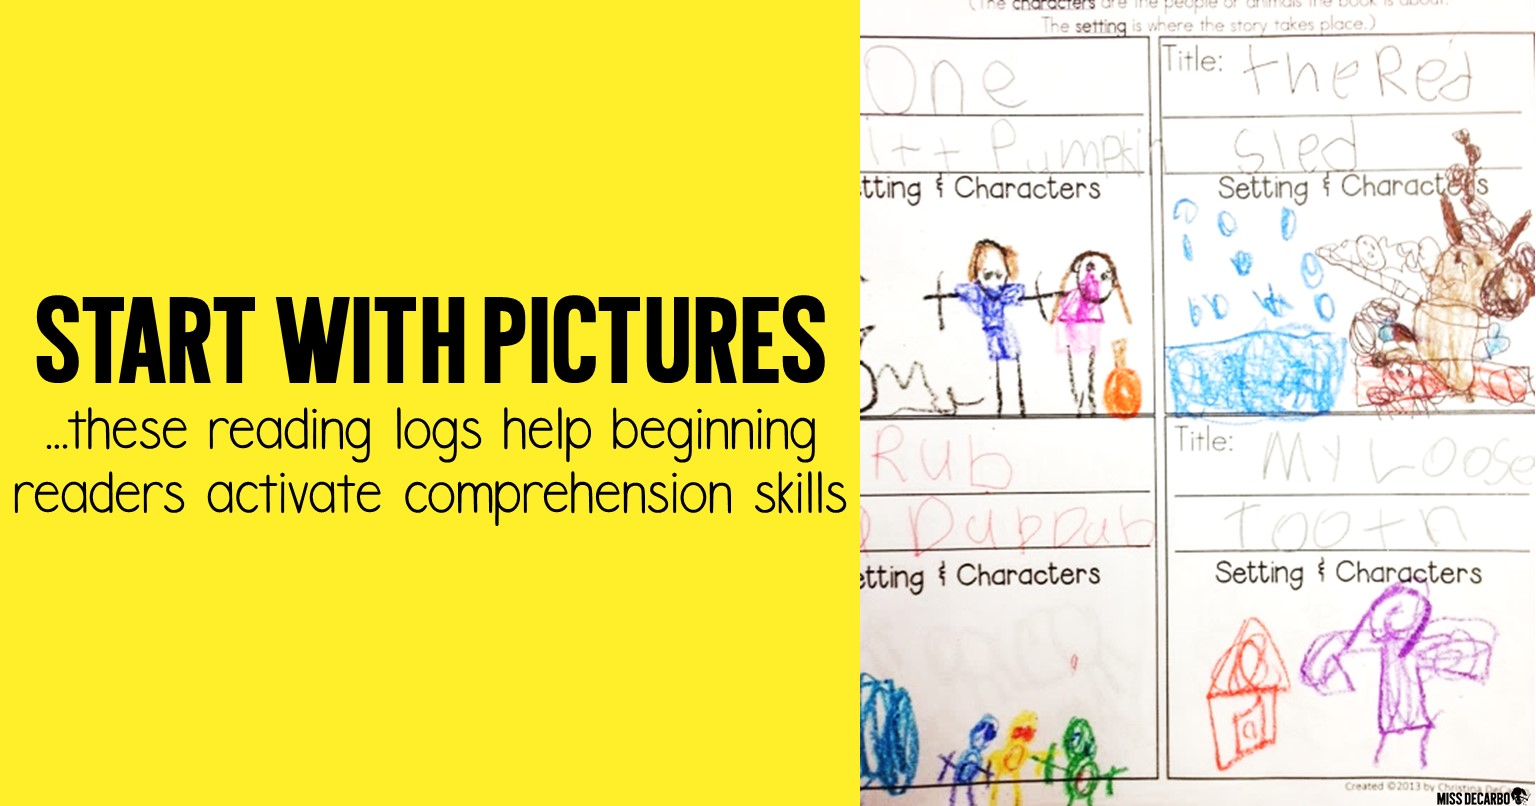 Kindergarten and first grade reading logs with a twist! Check out why I stopped using traditional reading logs in my classroom, and learn how I renovated the reading log to make it intentional for comprehension and nightly reading.